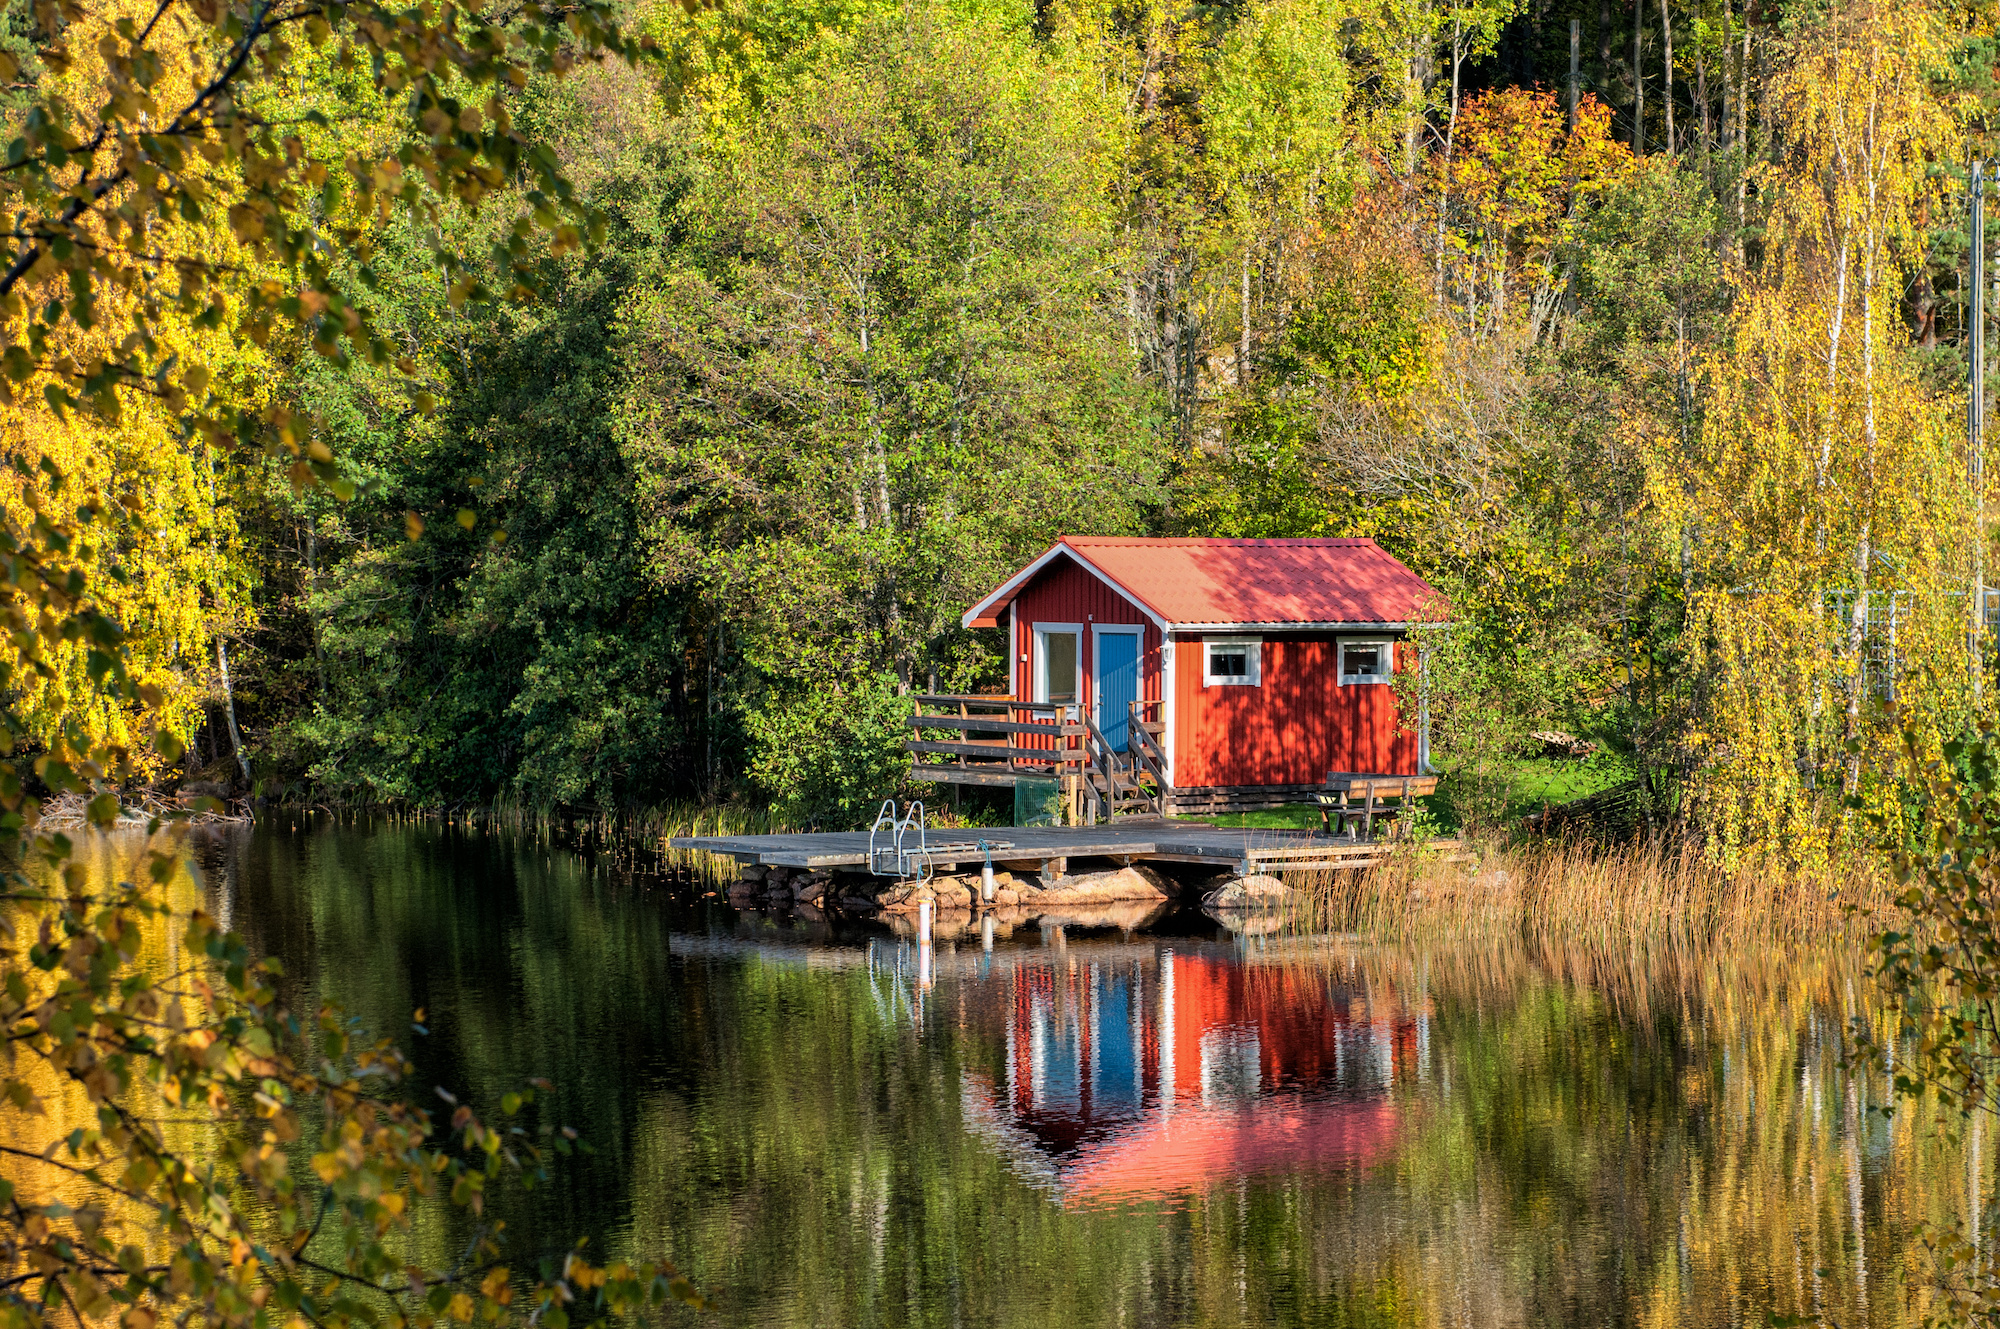 Cottage on lake with colourful trees